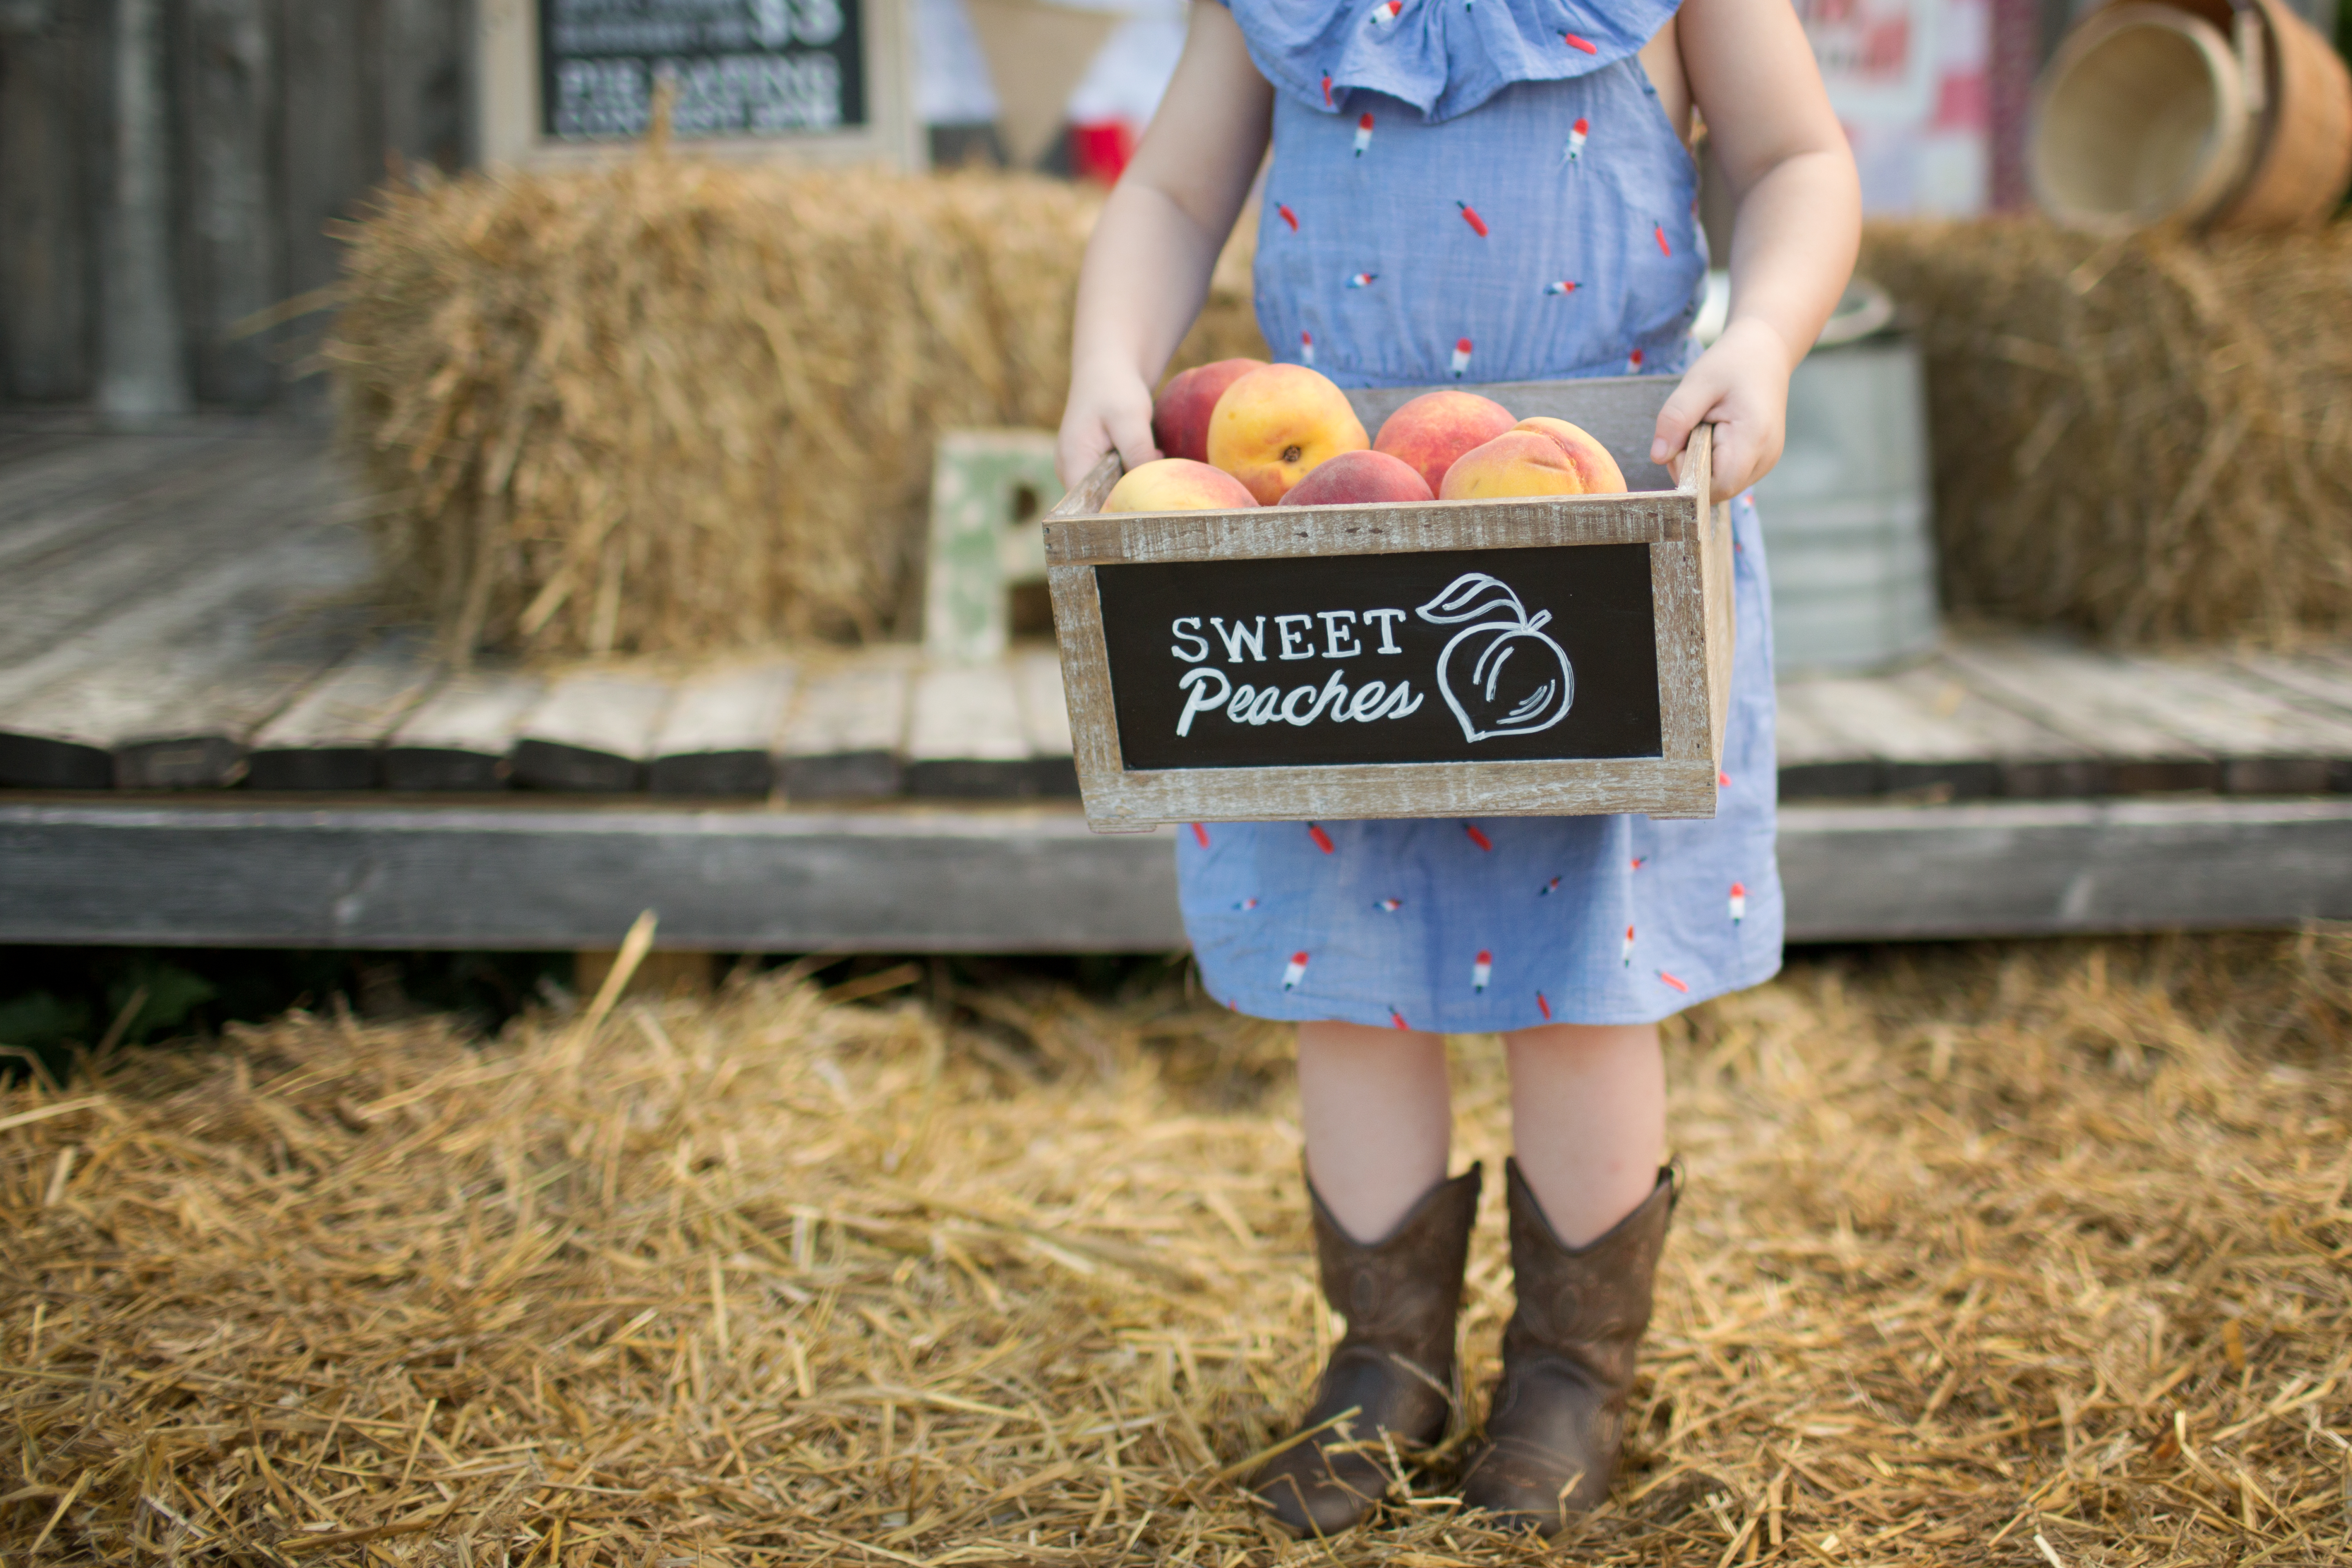 Pies for Sale | Patty K Photography | Greensboro NC Child Photographer